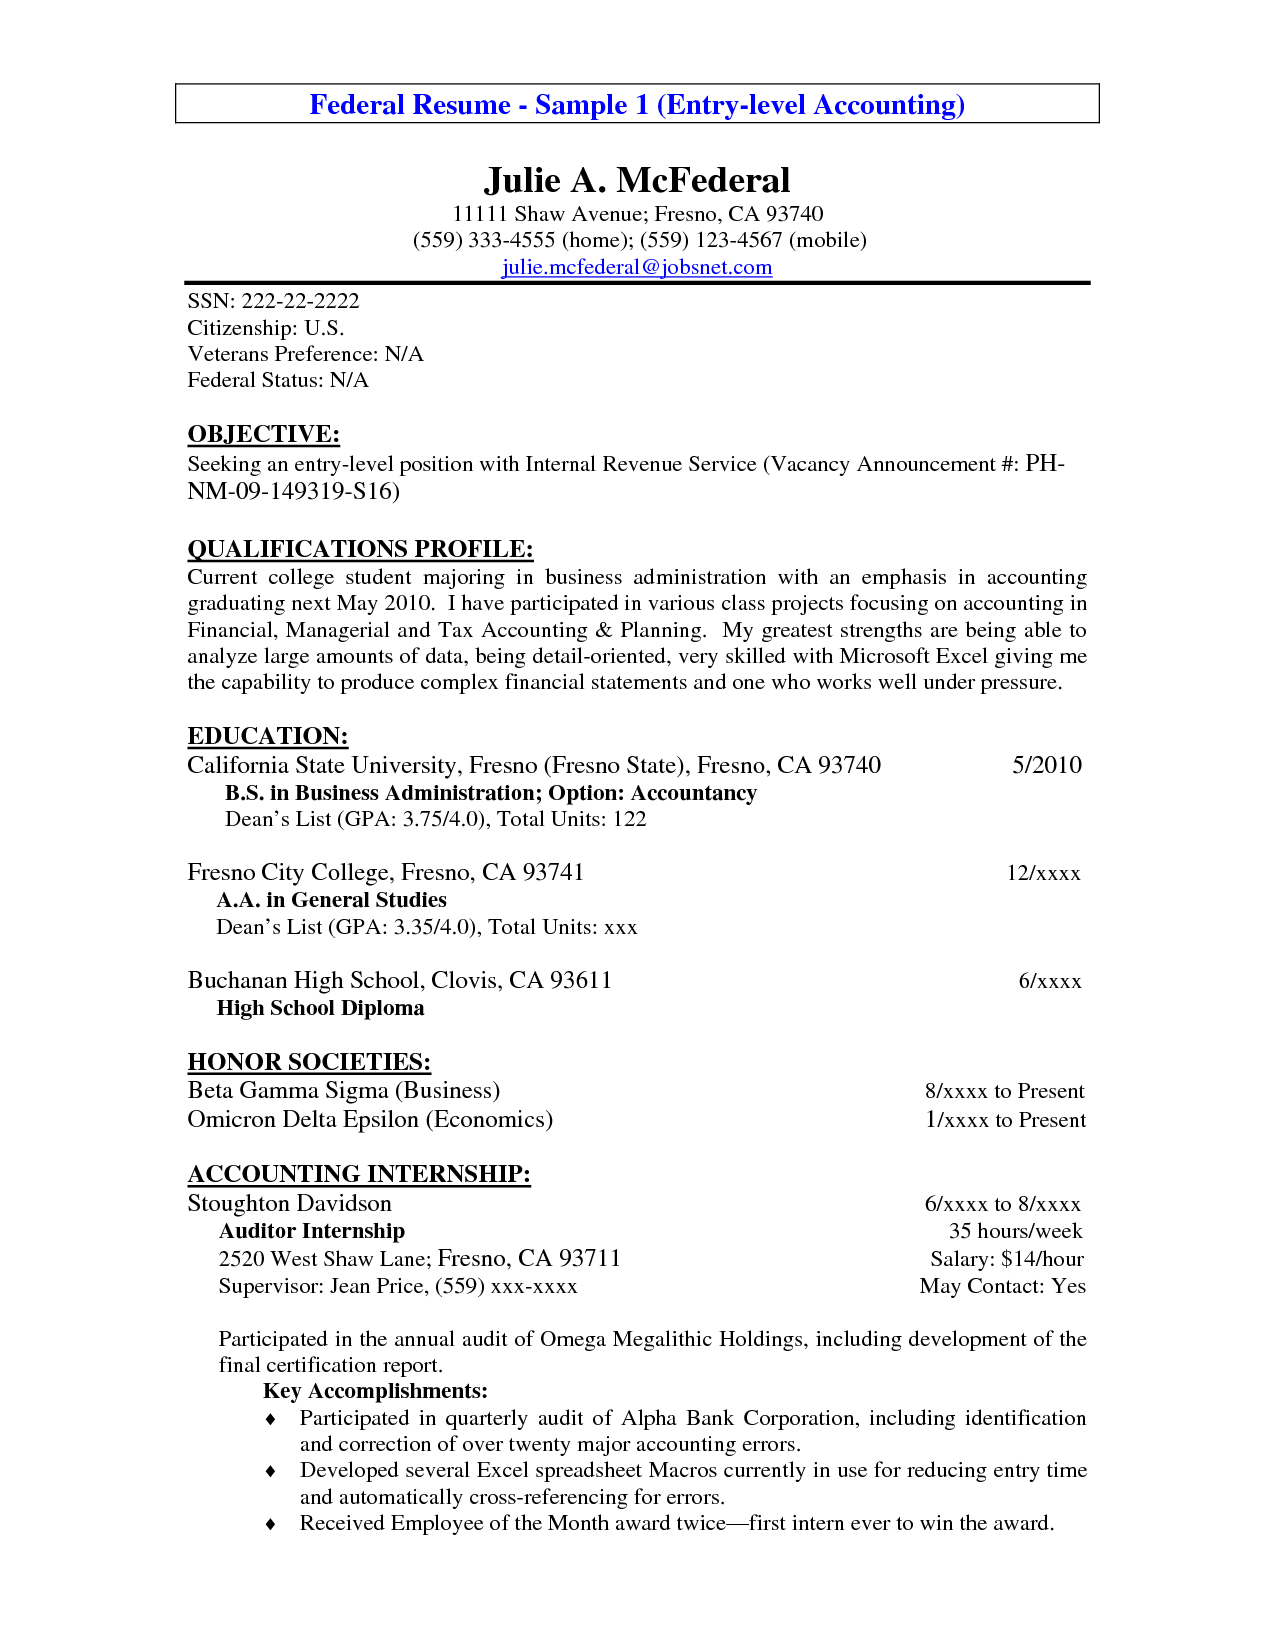 Examples Of Resume Objectives Accounting Resume Objectives Read More  Httpwww